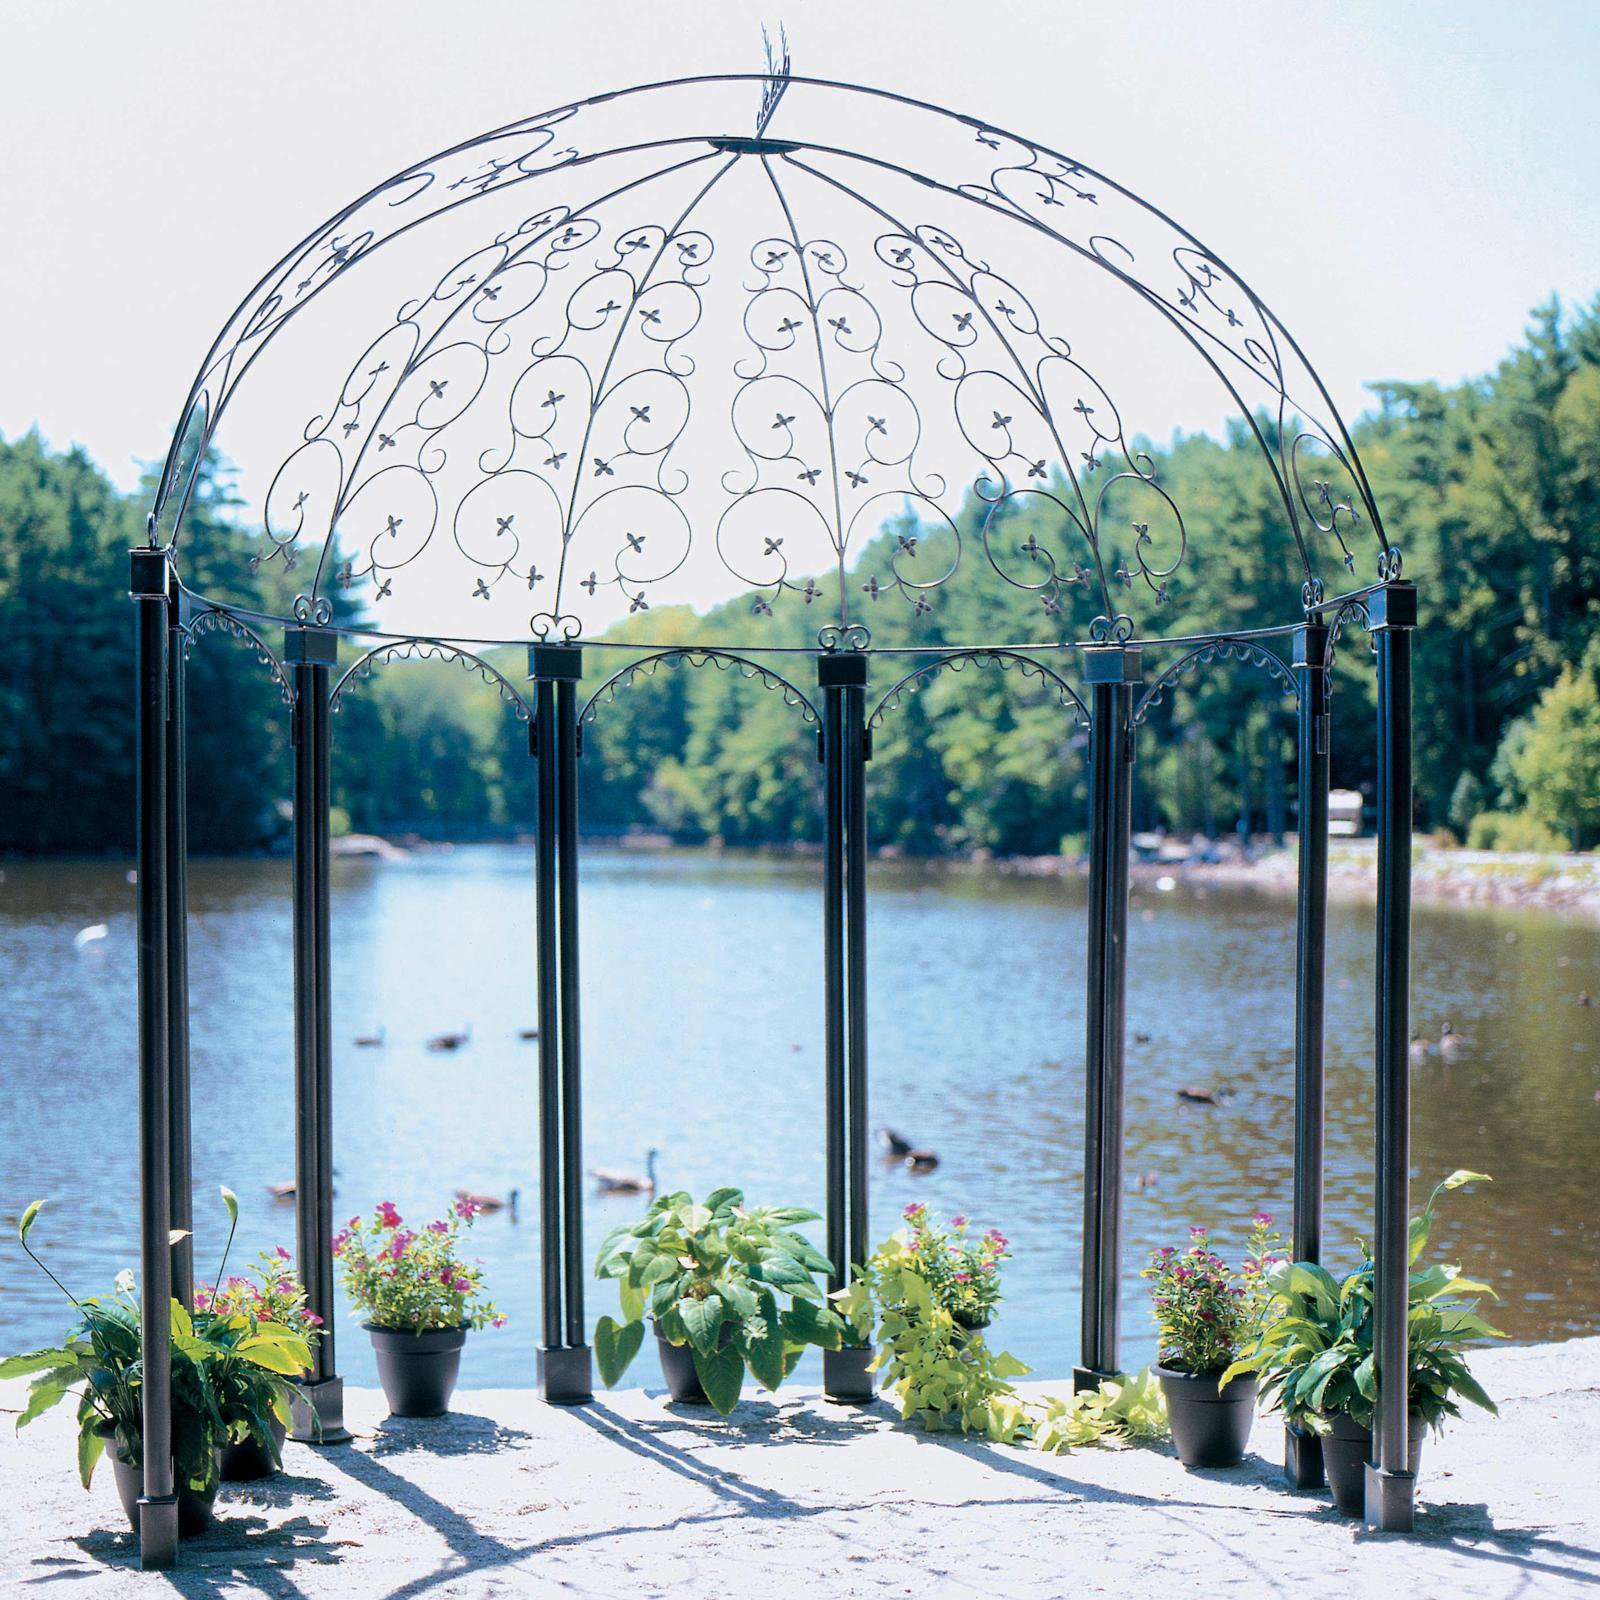 achla designs euphony 75 x 5 ft wrought iron pavilion gazebo achla designs wrought iron